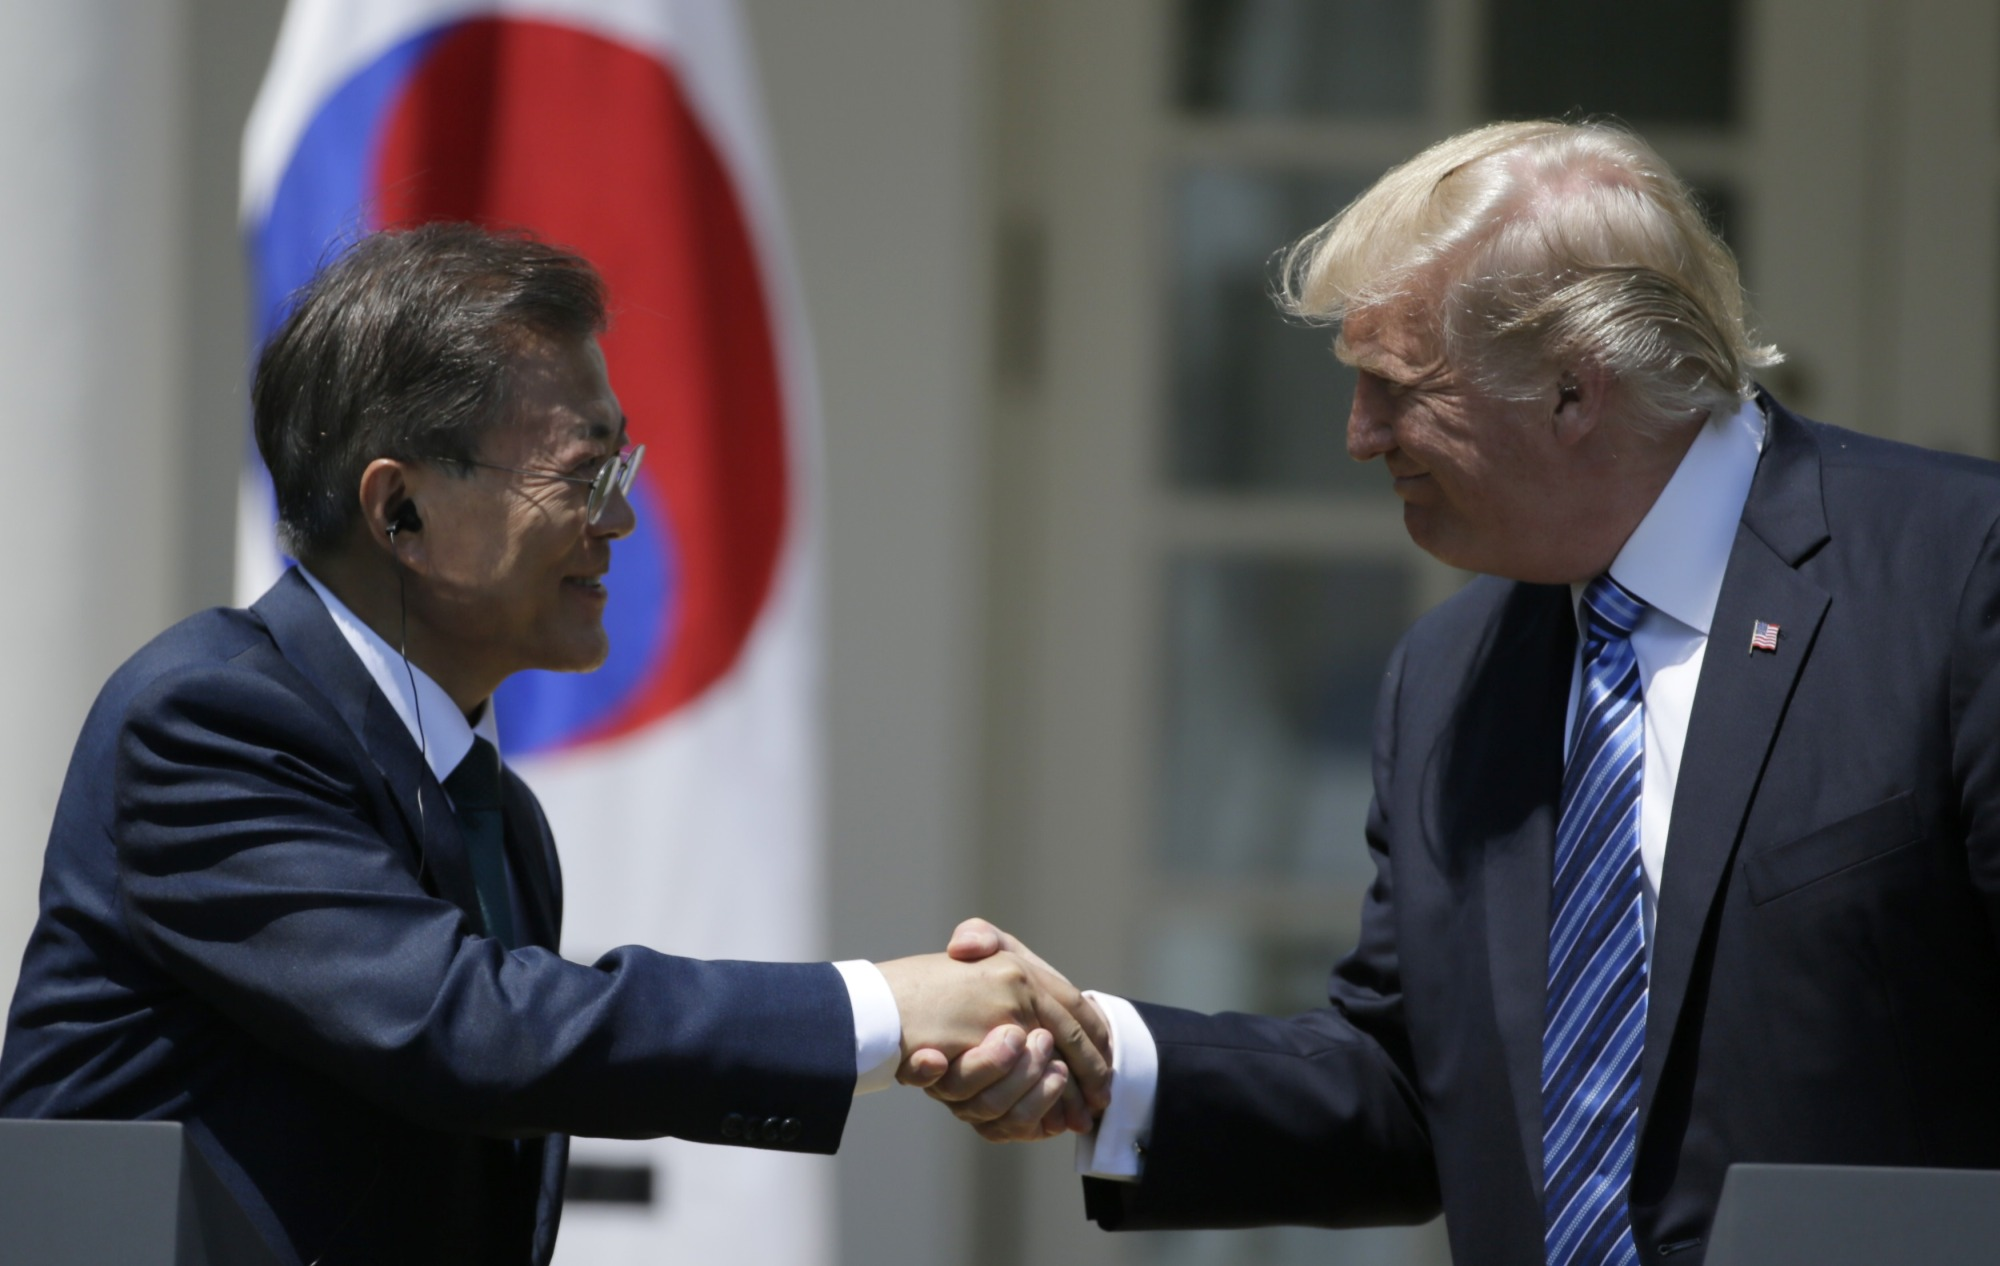 Trump weighing termination of South Korea free trade deal